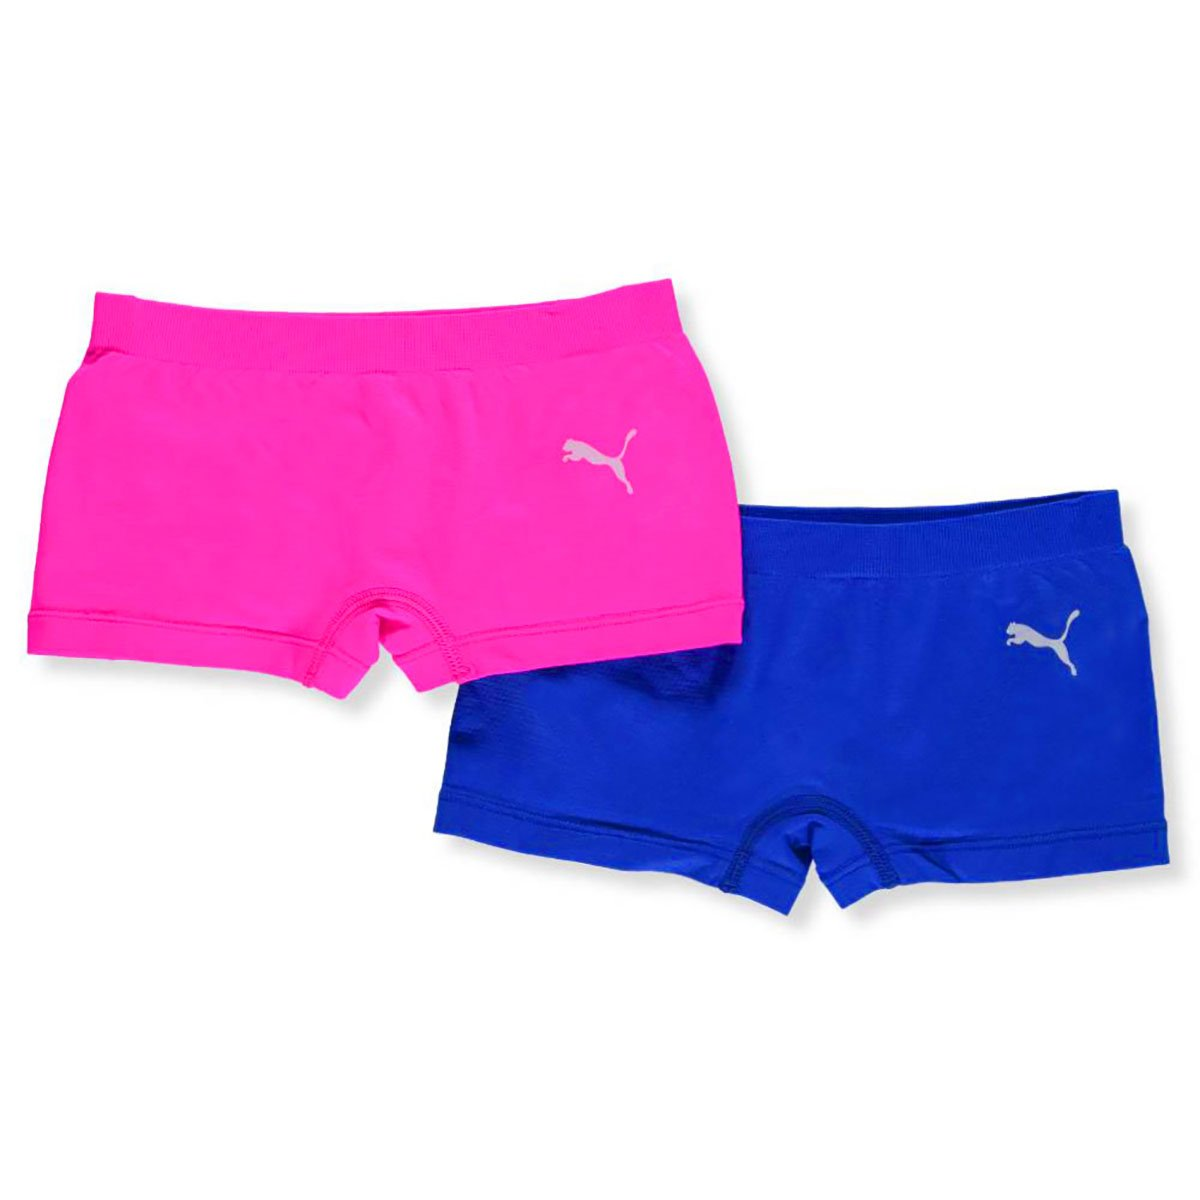 PUMA 2 Pack Girls Boy Shorts Seamless and Tag Free Solid Color Comfort Stretch